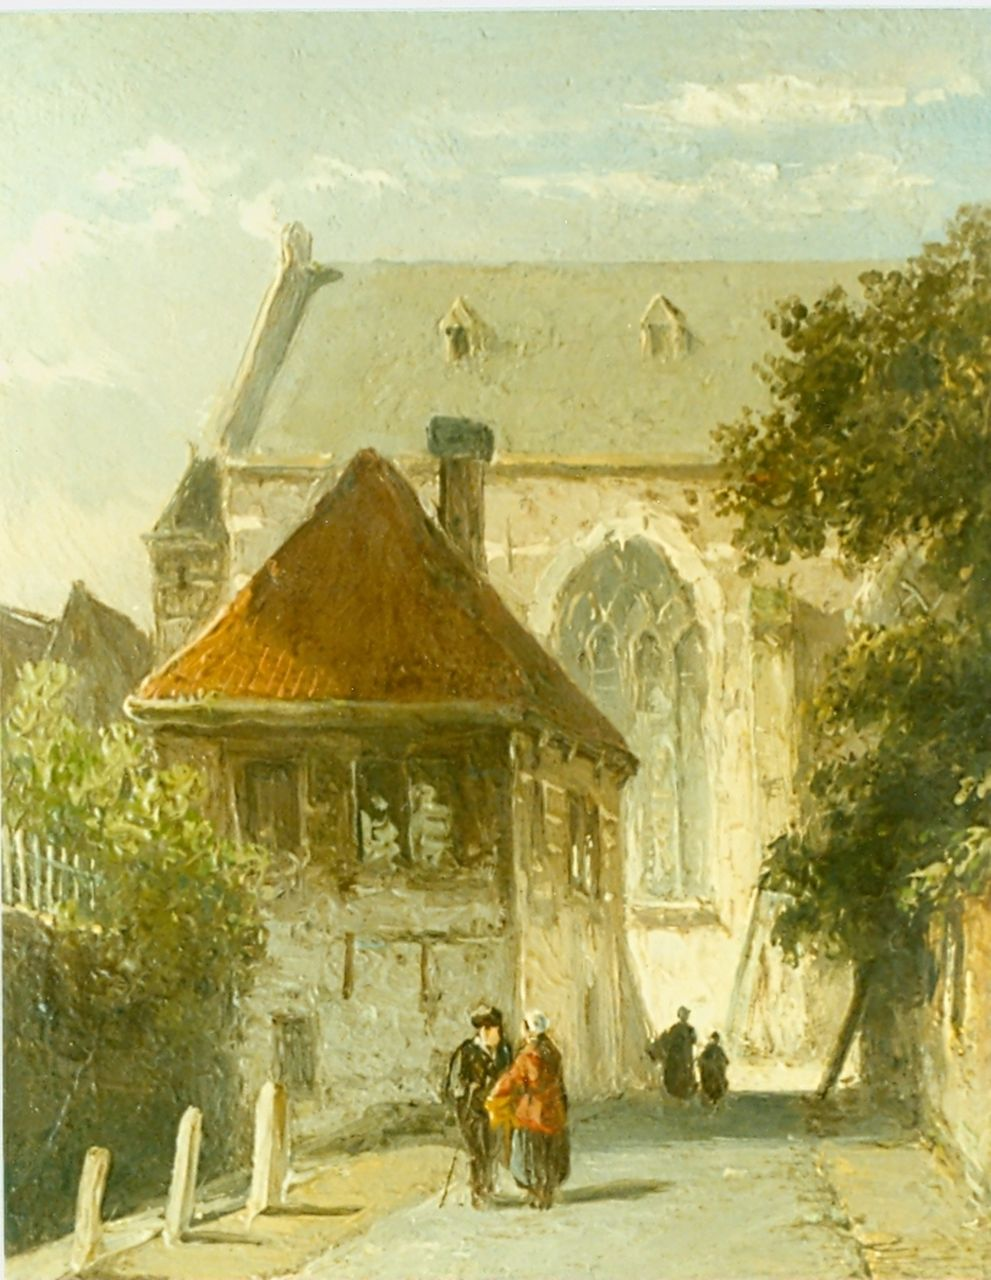 Eversen A.  | Adrianus Eversen, Figures in a street, with a church beyond, oil on panel 12.9 x 10.9 cm, signed l.l.